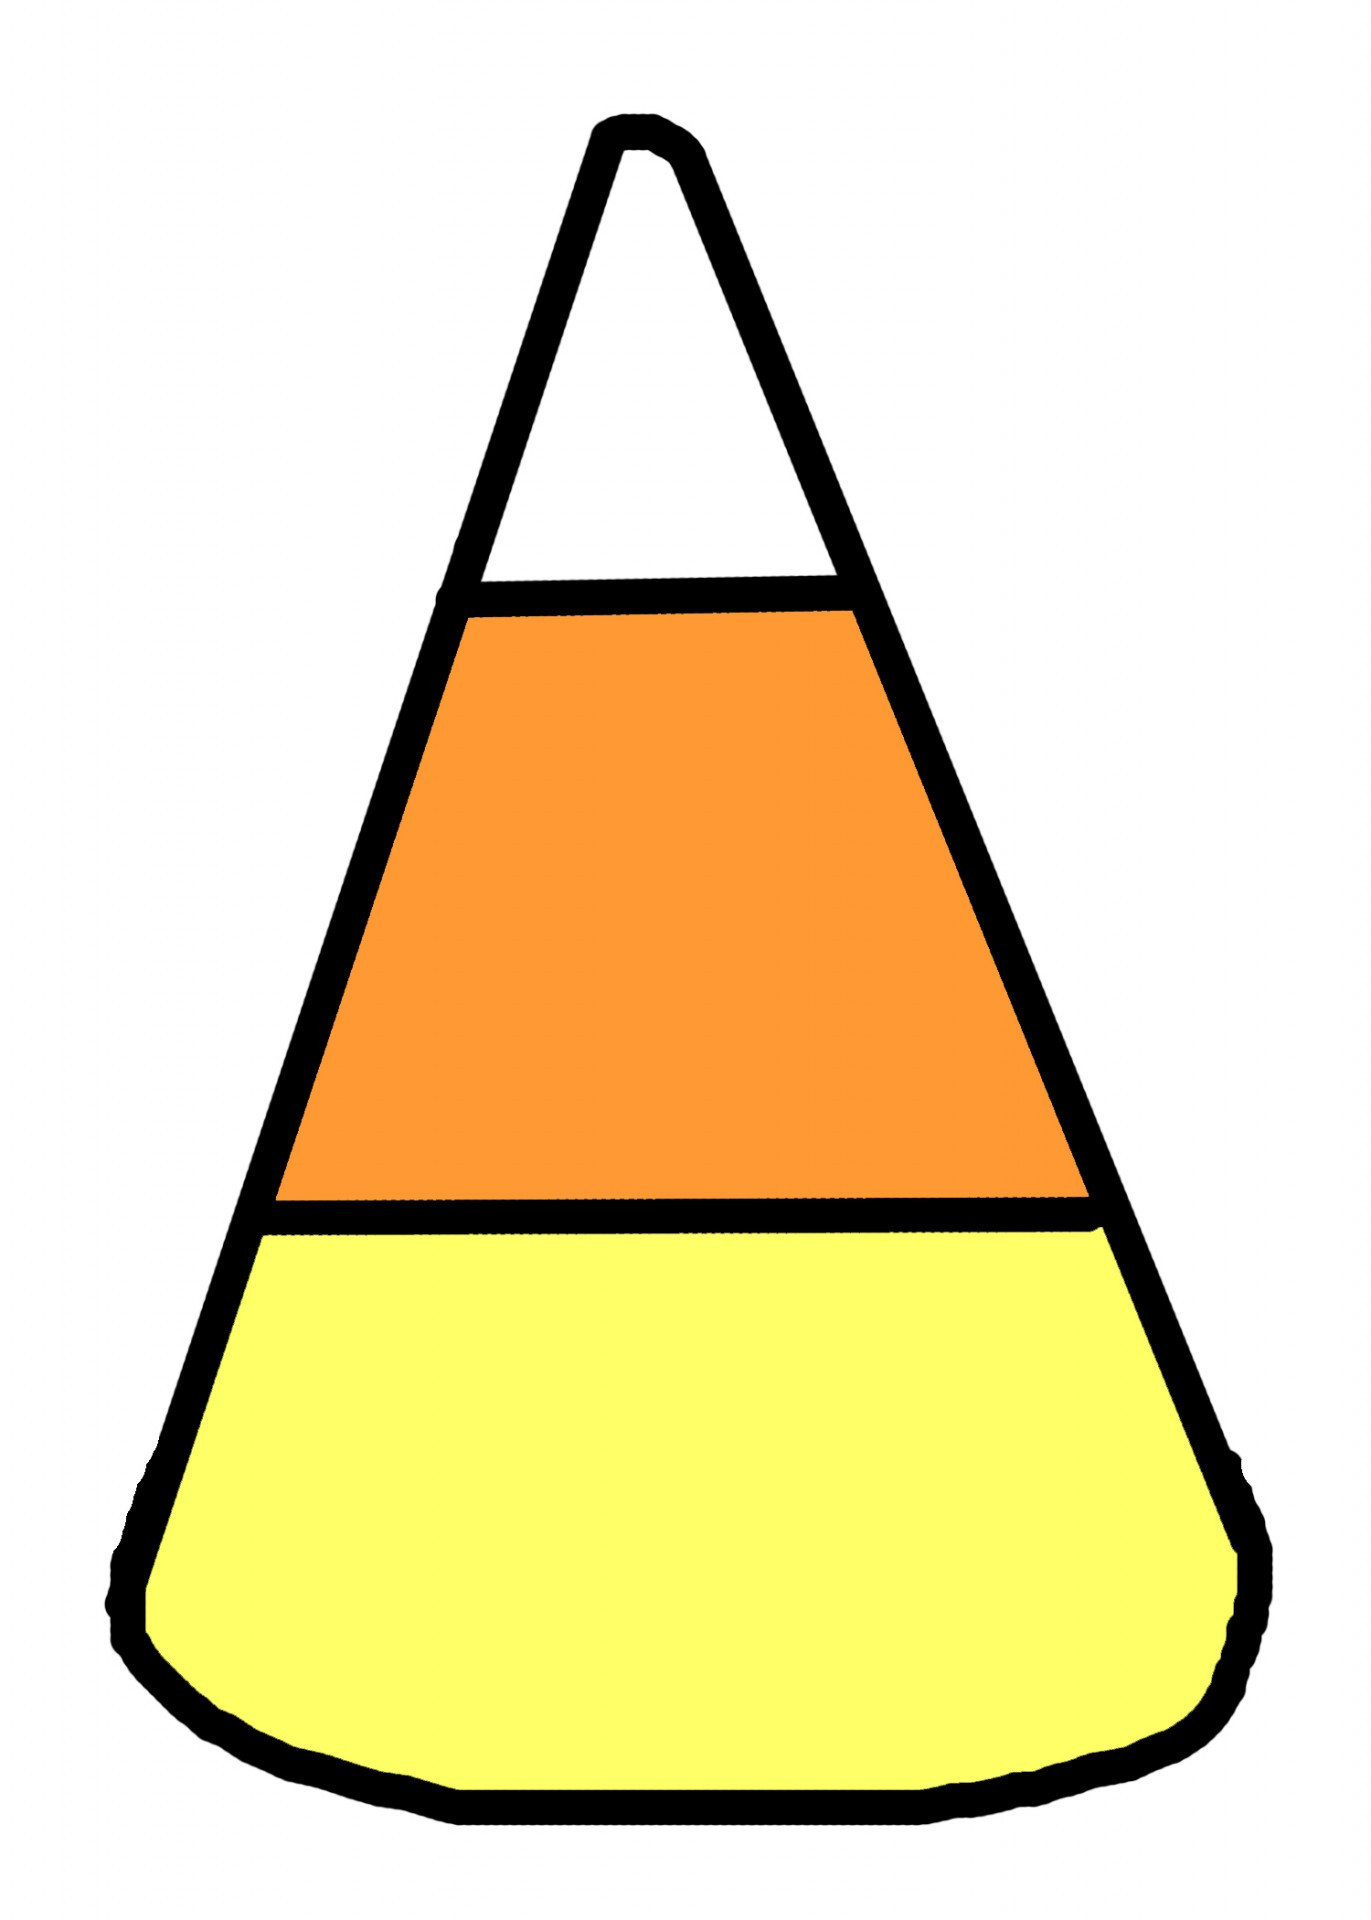 Candy Corn Clipart  Candy Corn Illustration Free Stock Public Domain